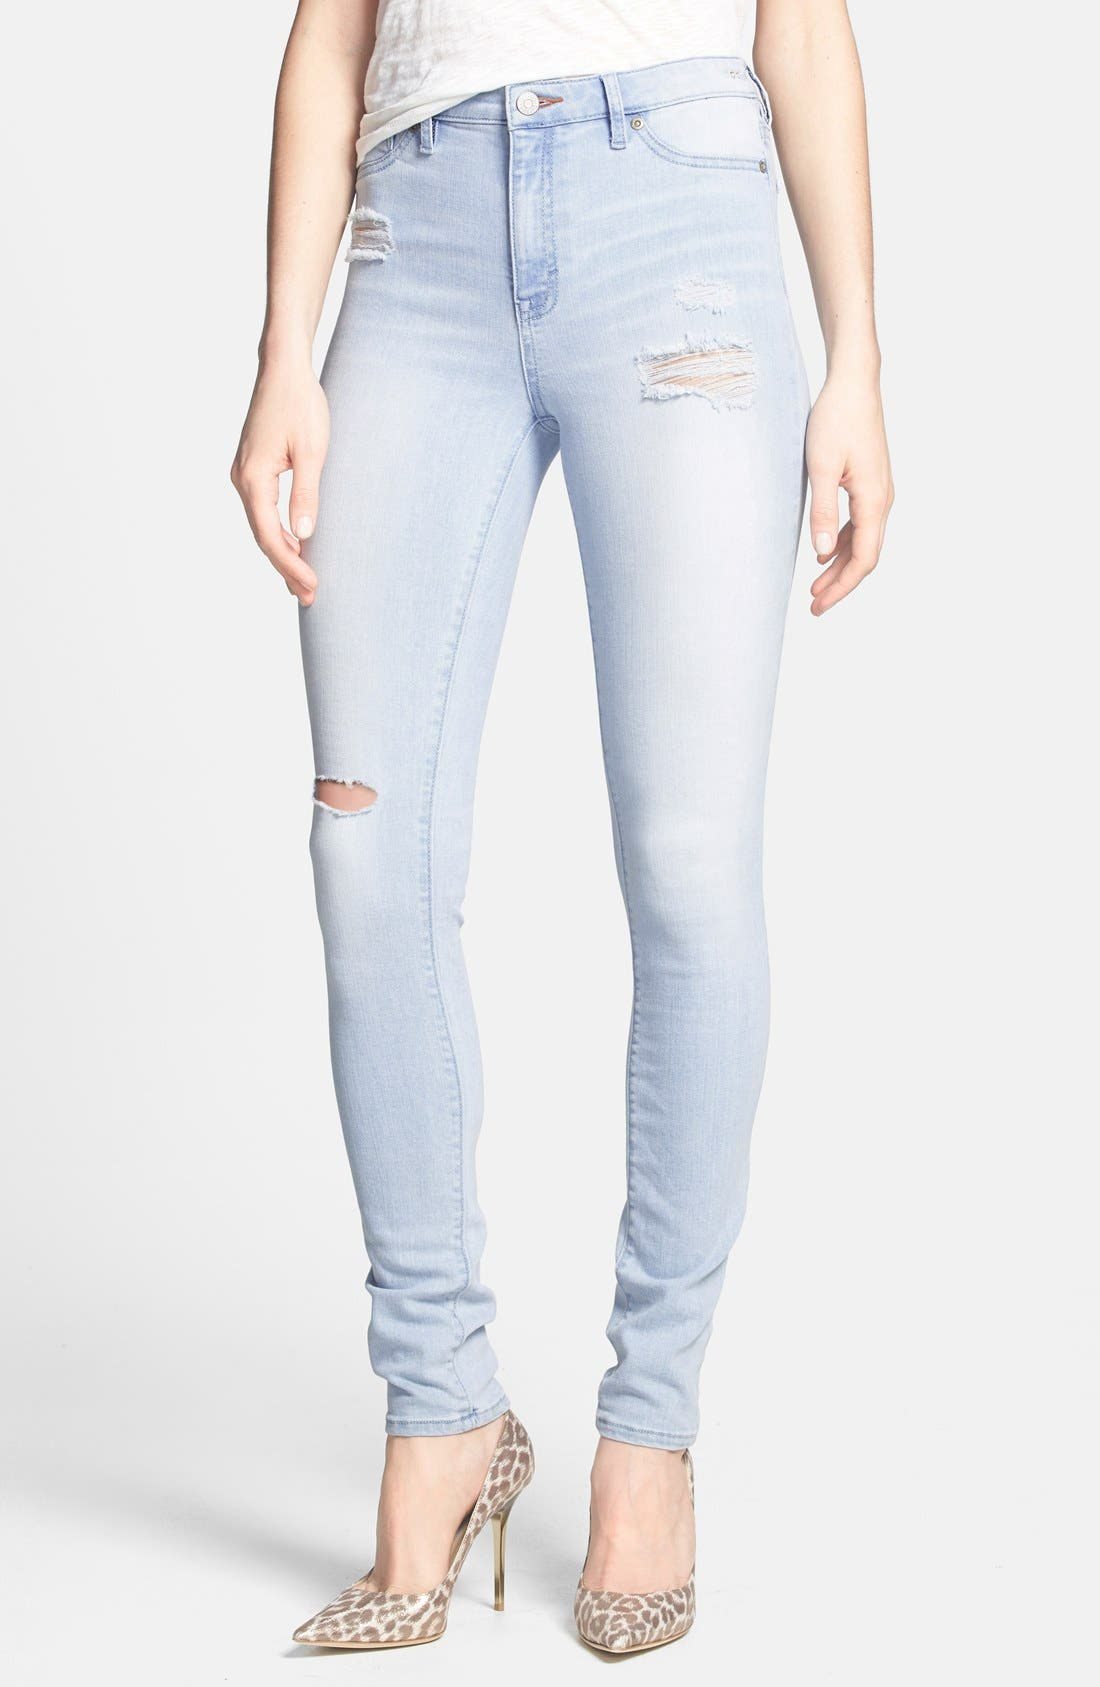 Main Image - Dittos 'Jessica' Destroyed Skinny Jeans (Enzyme Bleach Destructed)